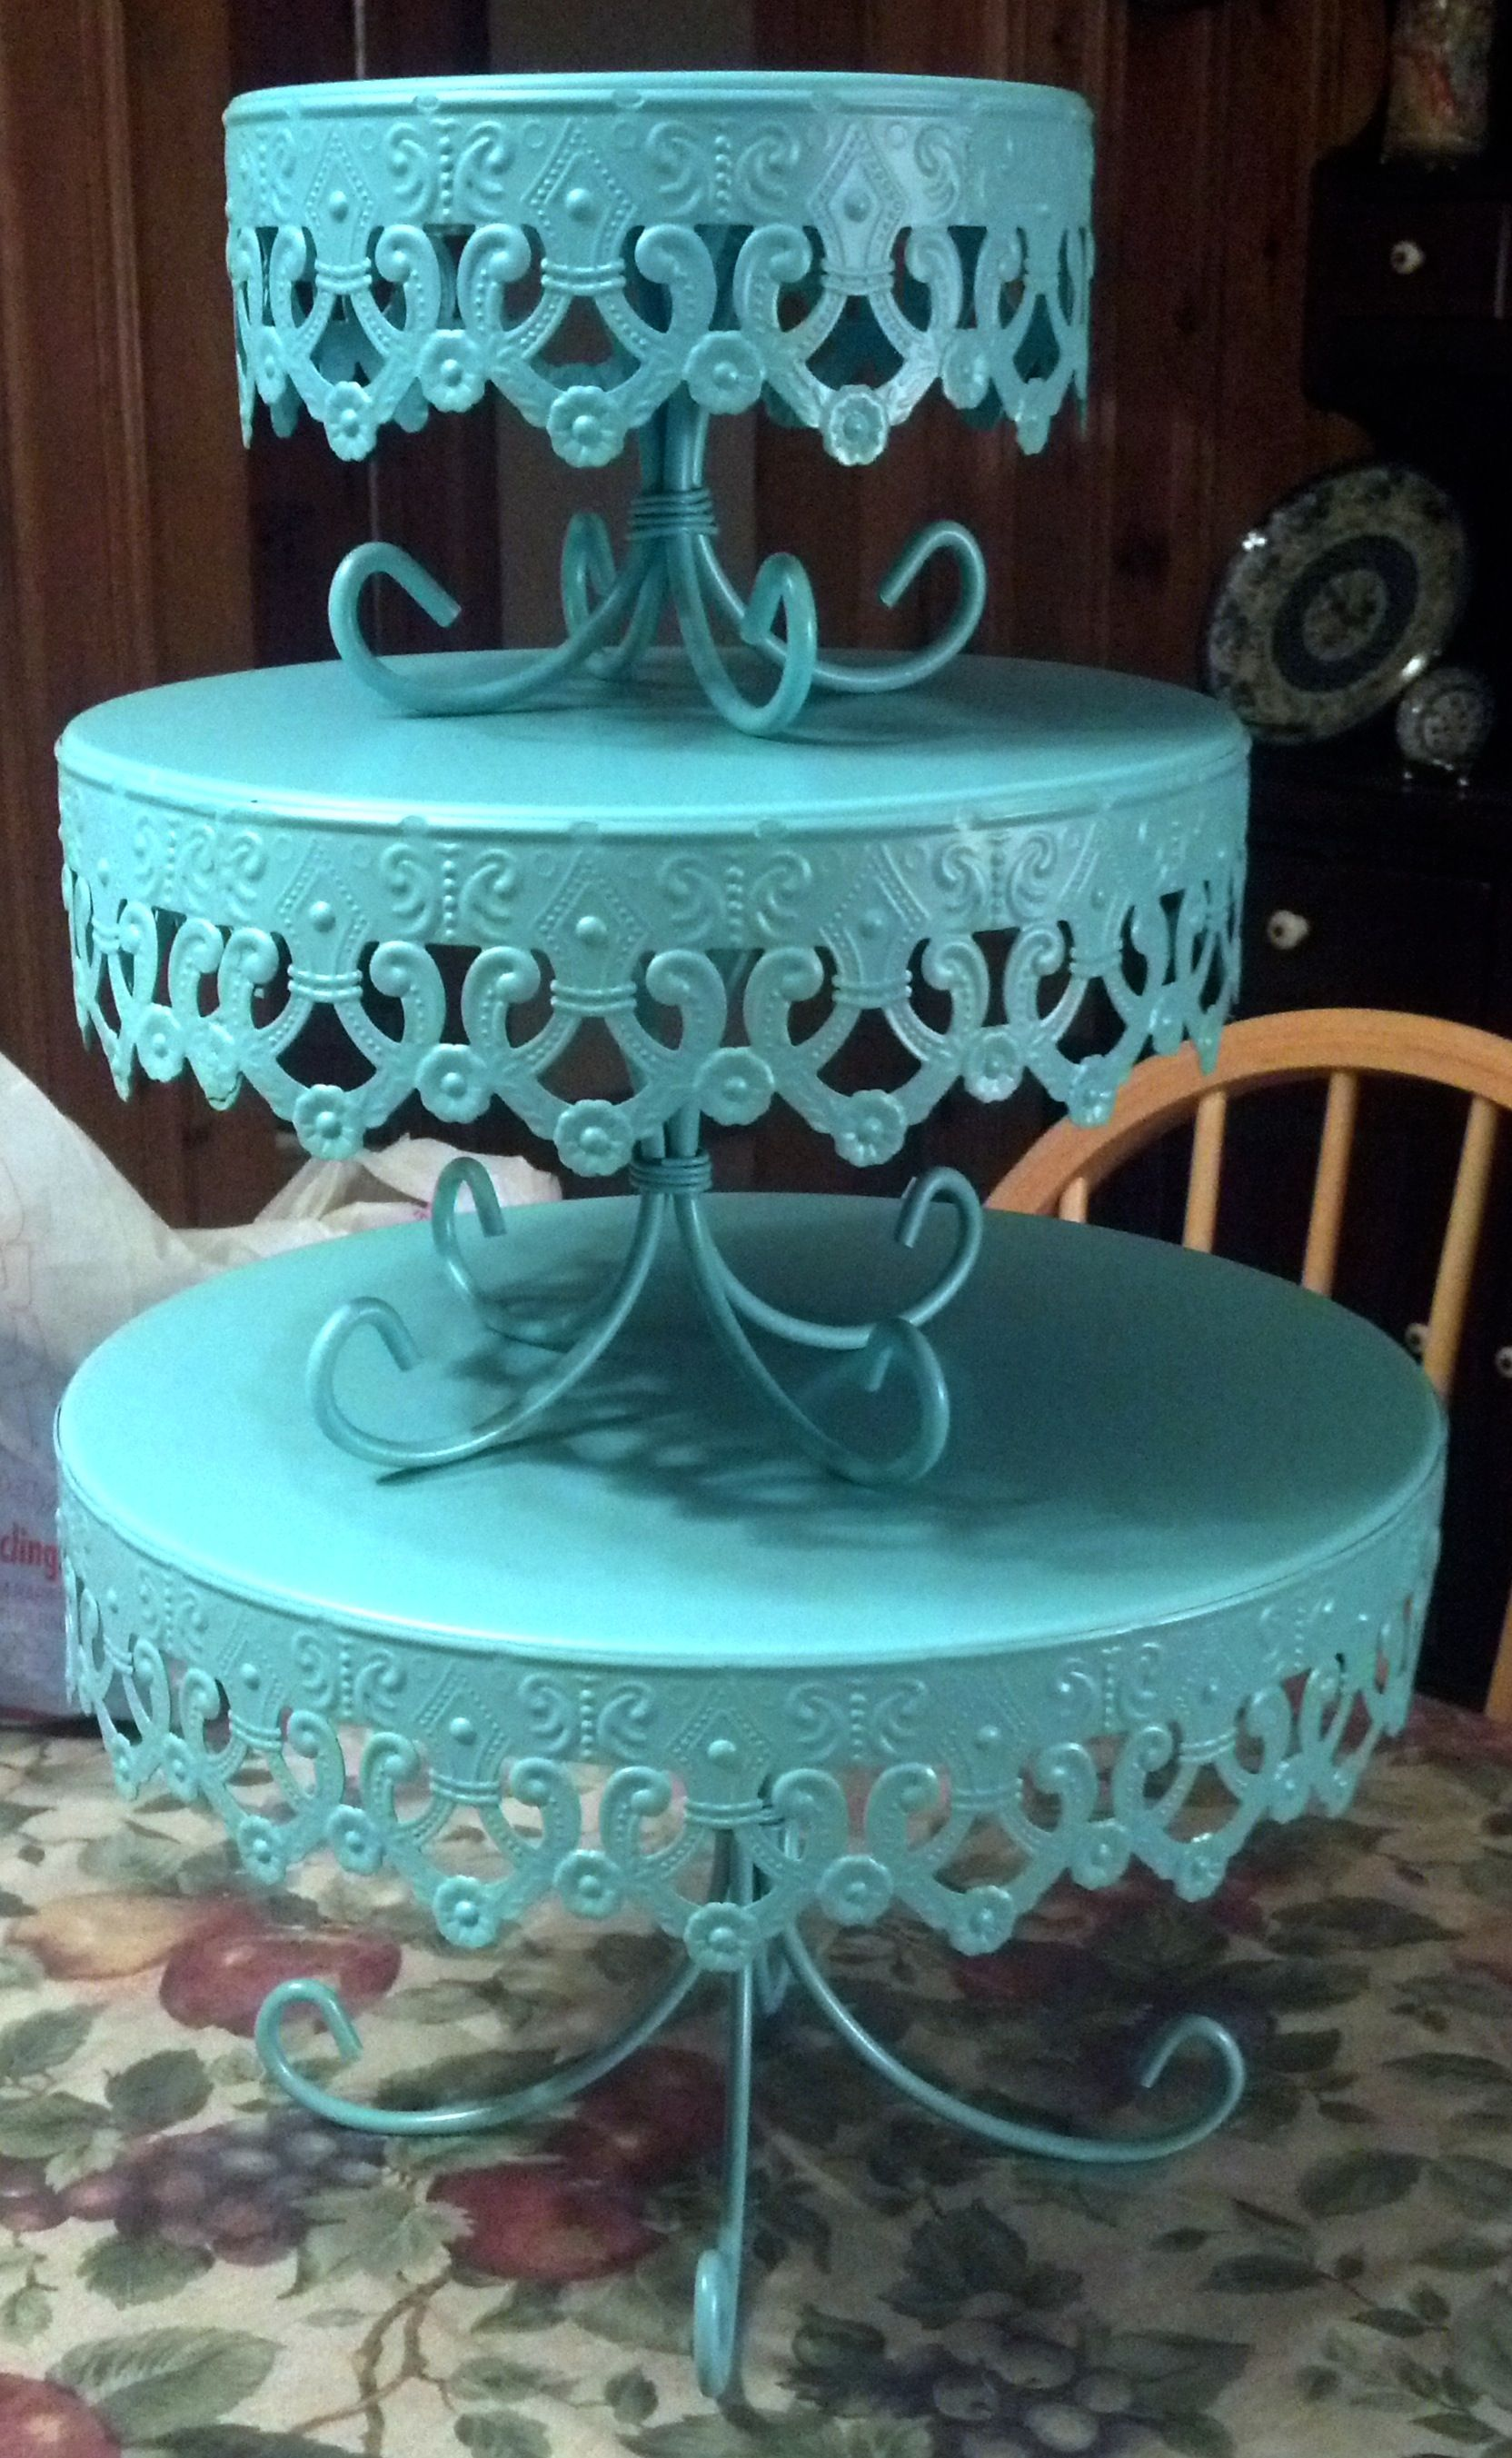 Turquoise cake stands from Marshalls